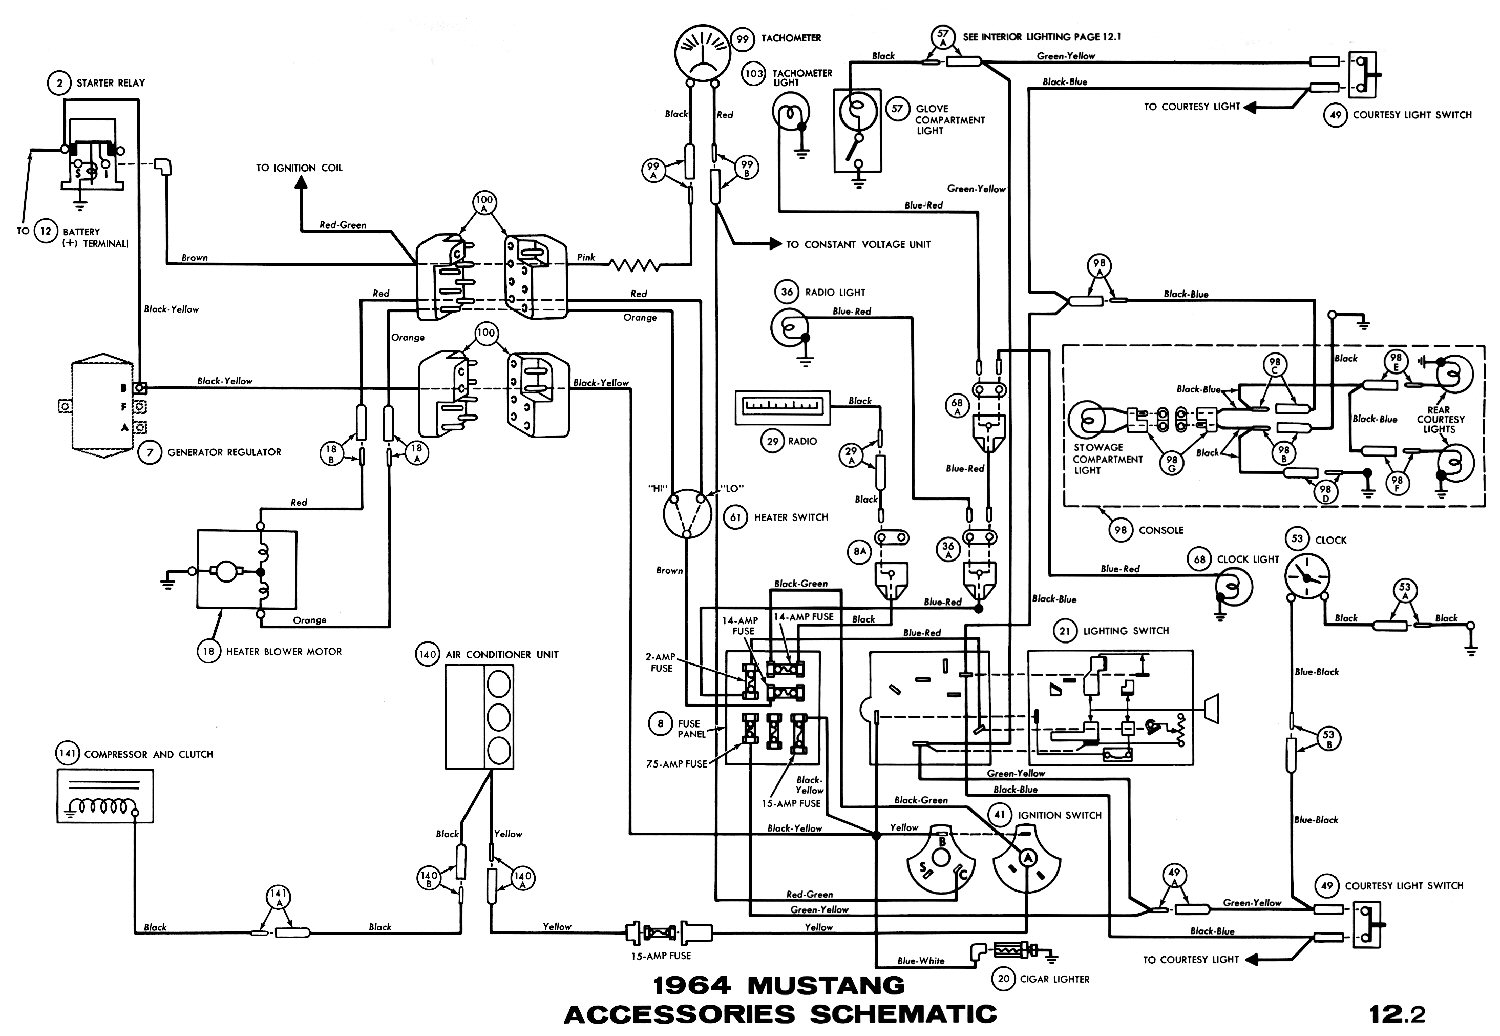 66 mustang ignition wiring diagram sony xplod car radio 1970 6 22 tefolia de ford blog data 1964